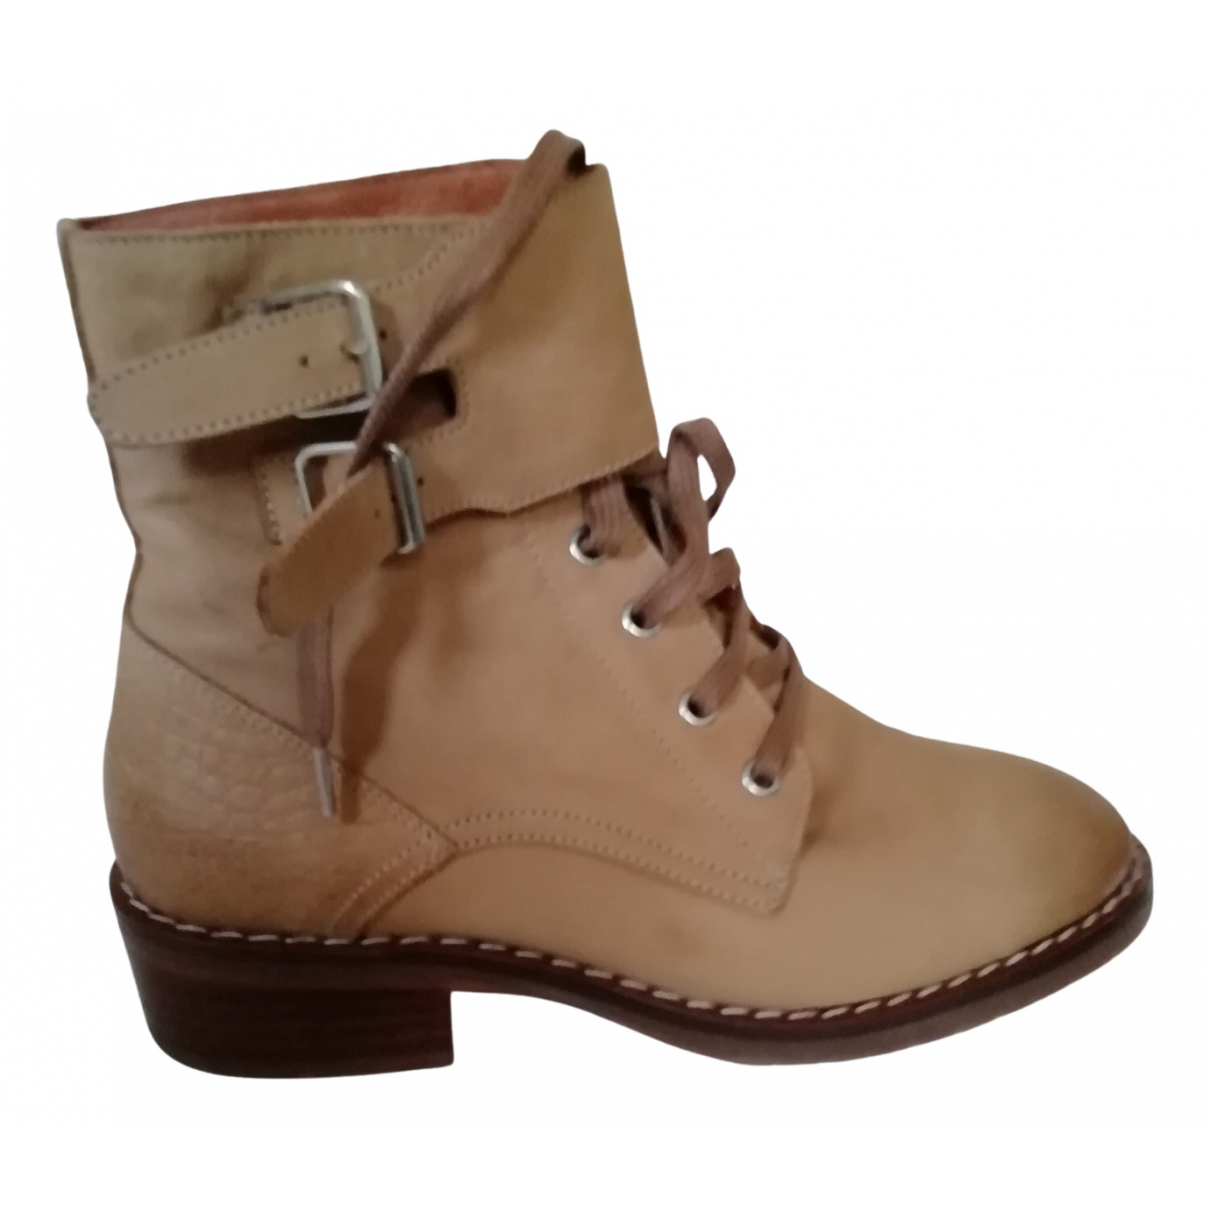 Ikks N Beige Leather Ankle boots for Women 37 EU